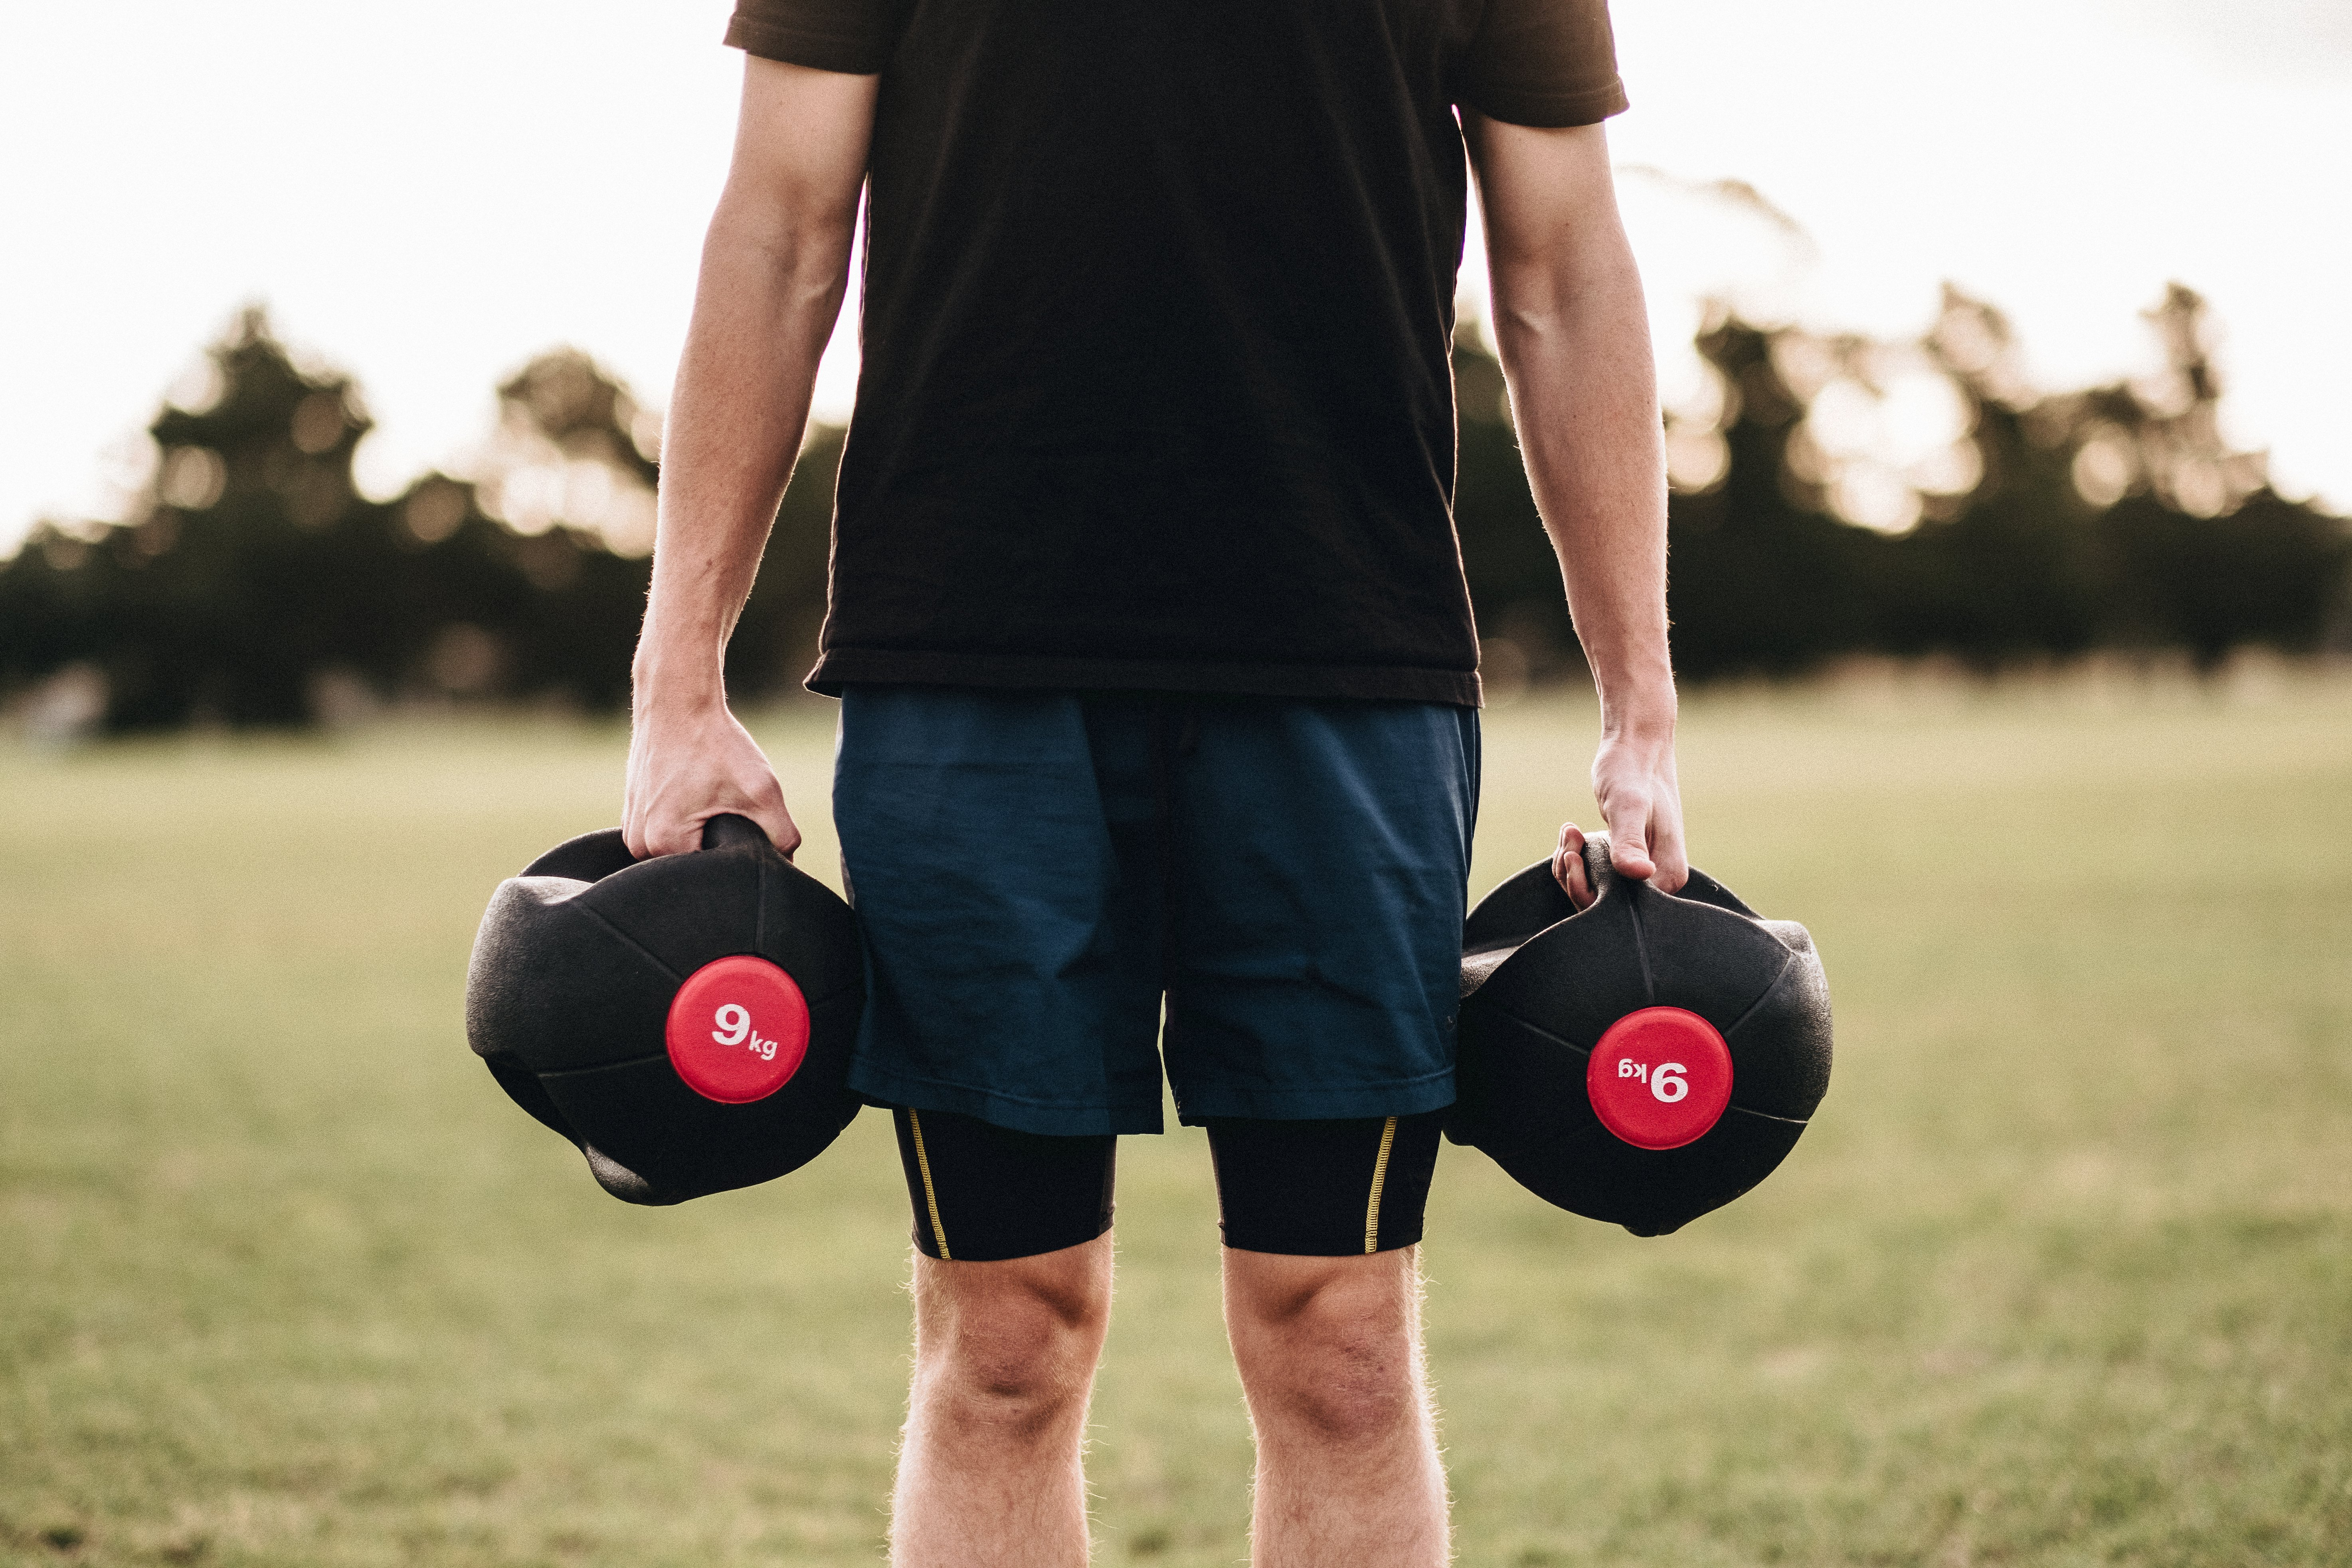 Canva - Person Holding Black Kettlebells